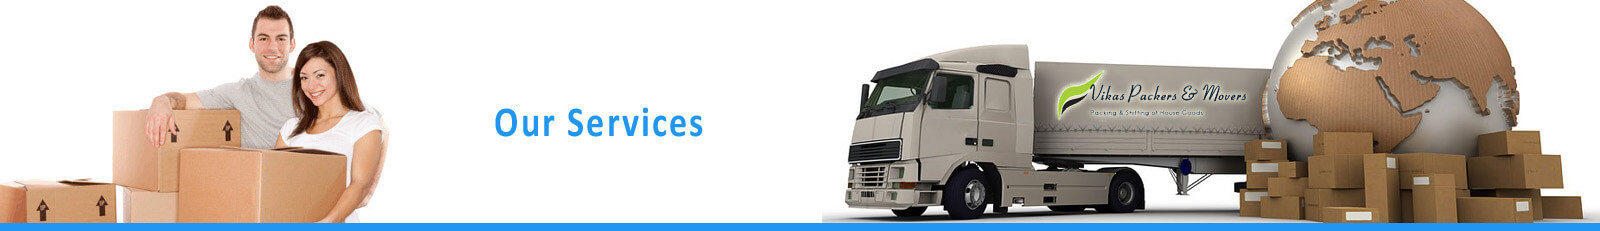 car transport services noida